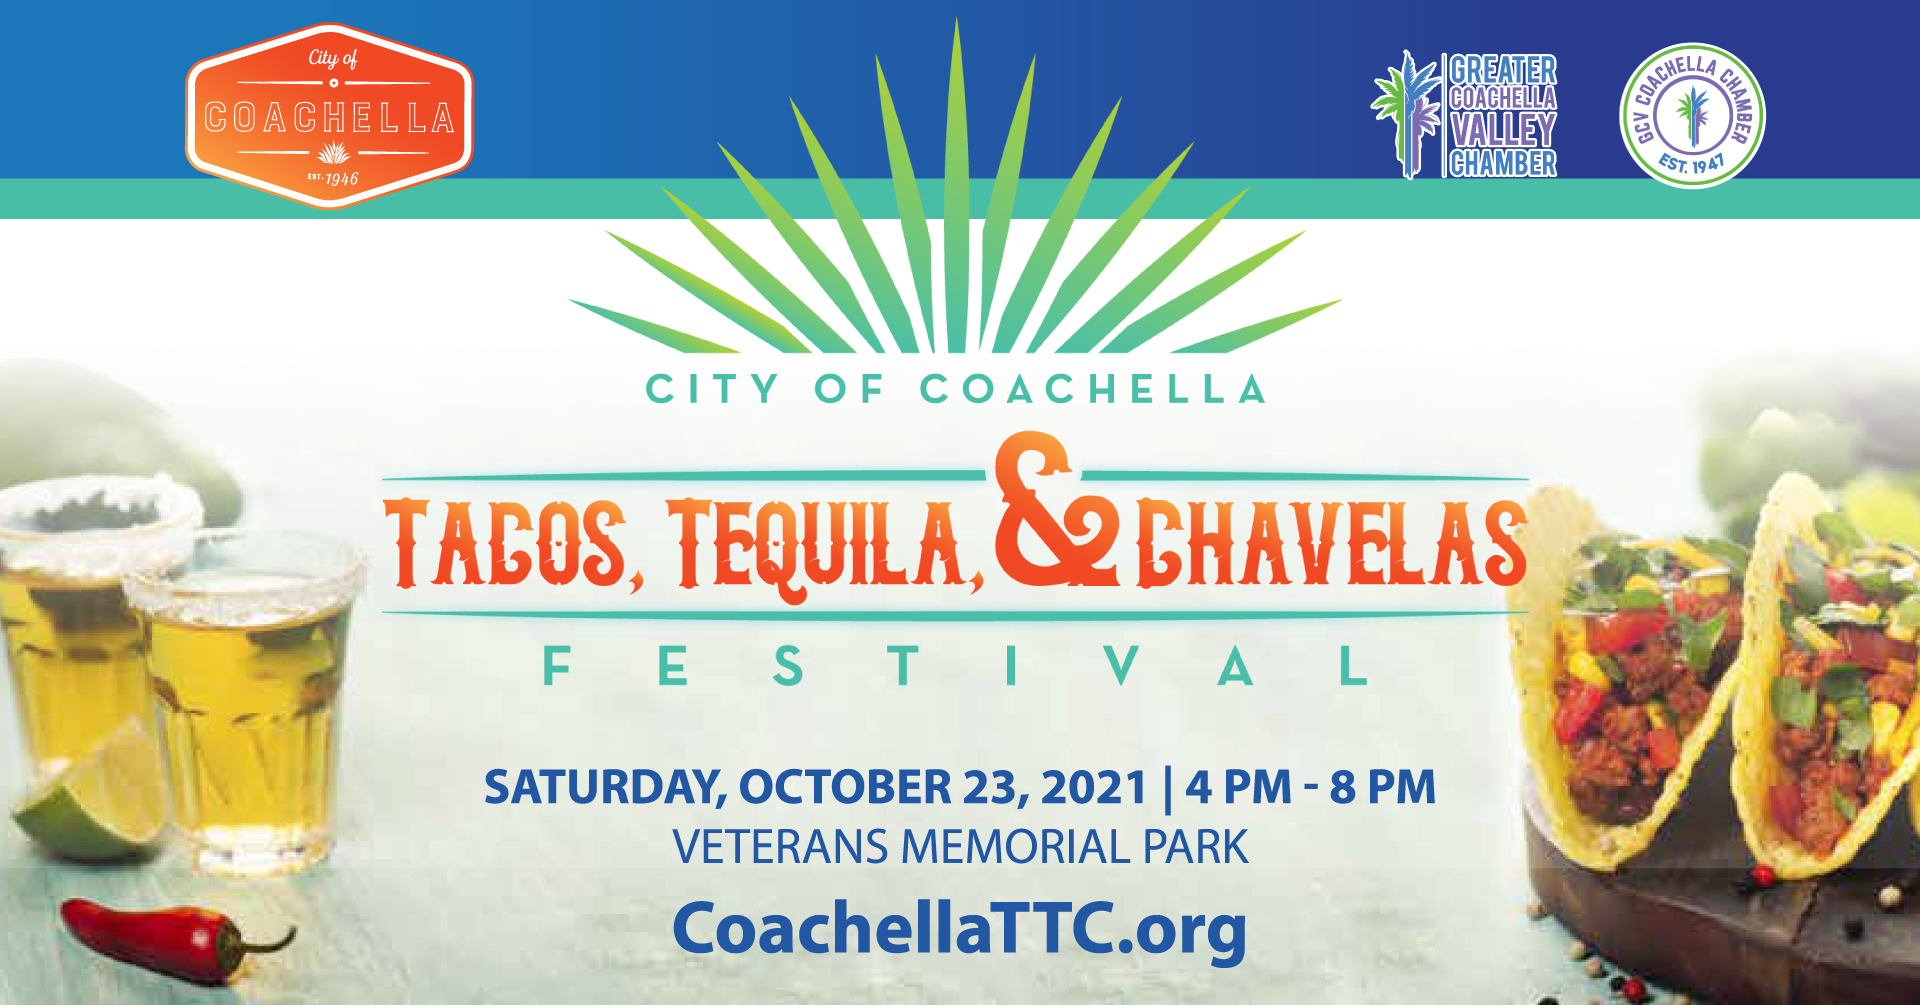 Tacos, Tequila and Chavelas